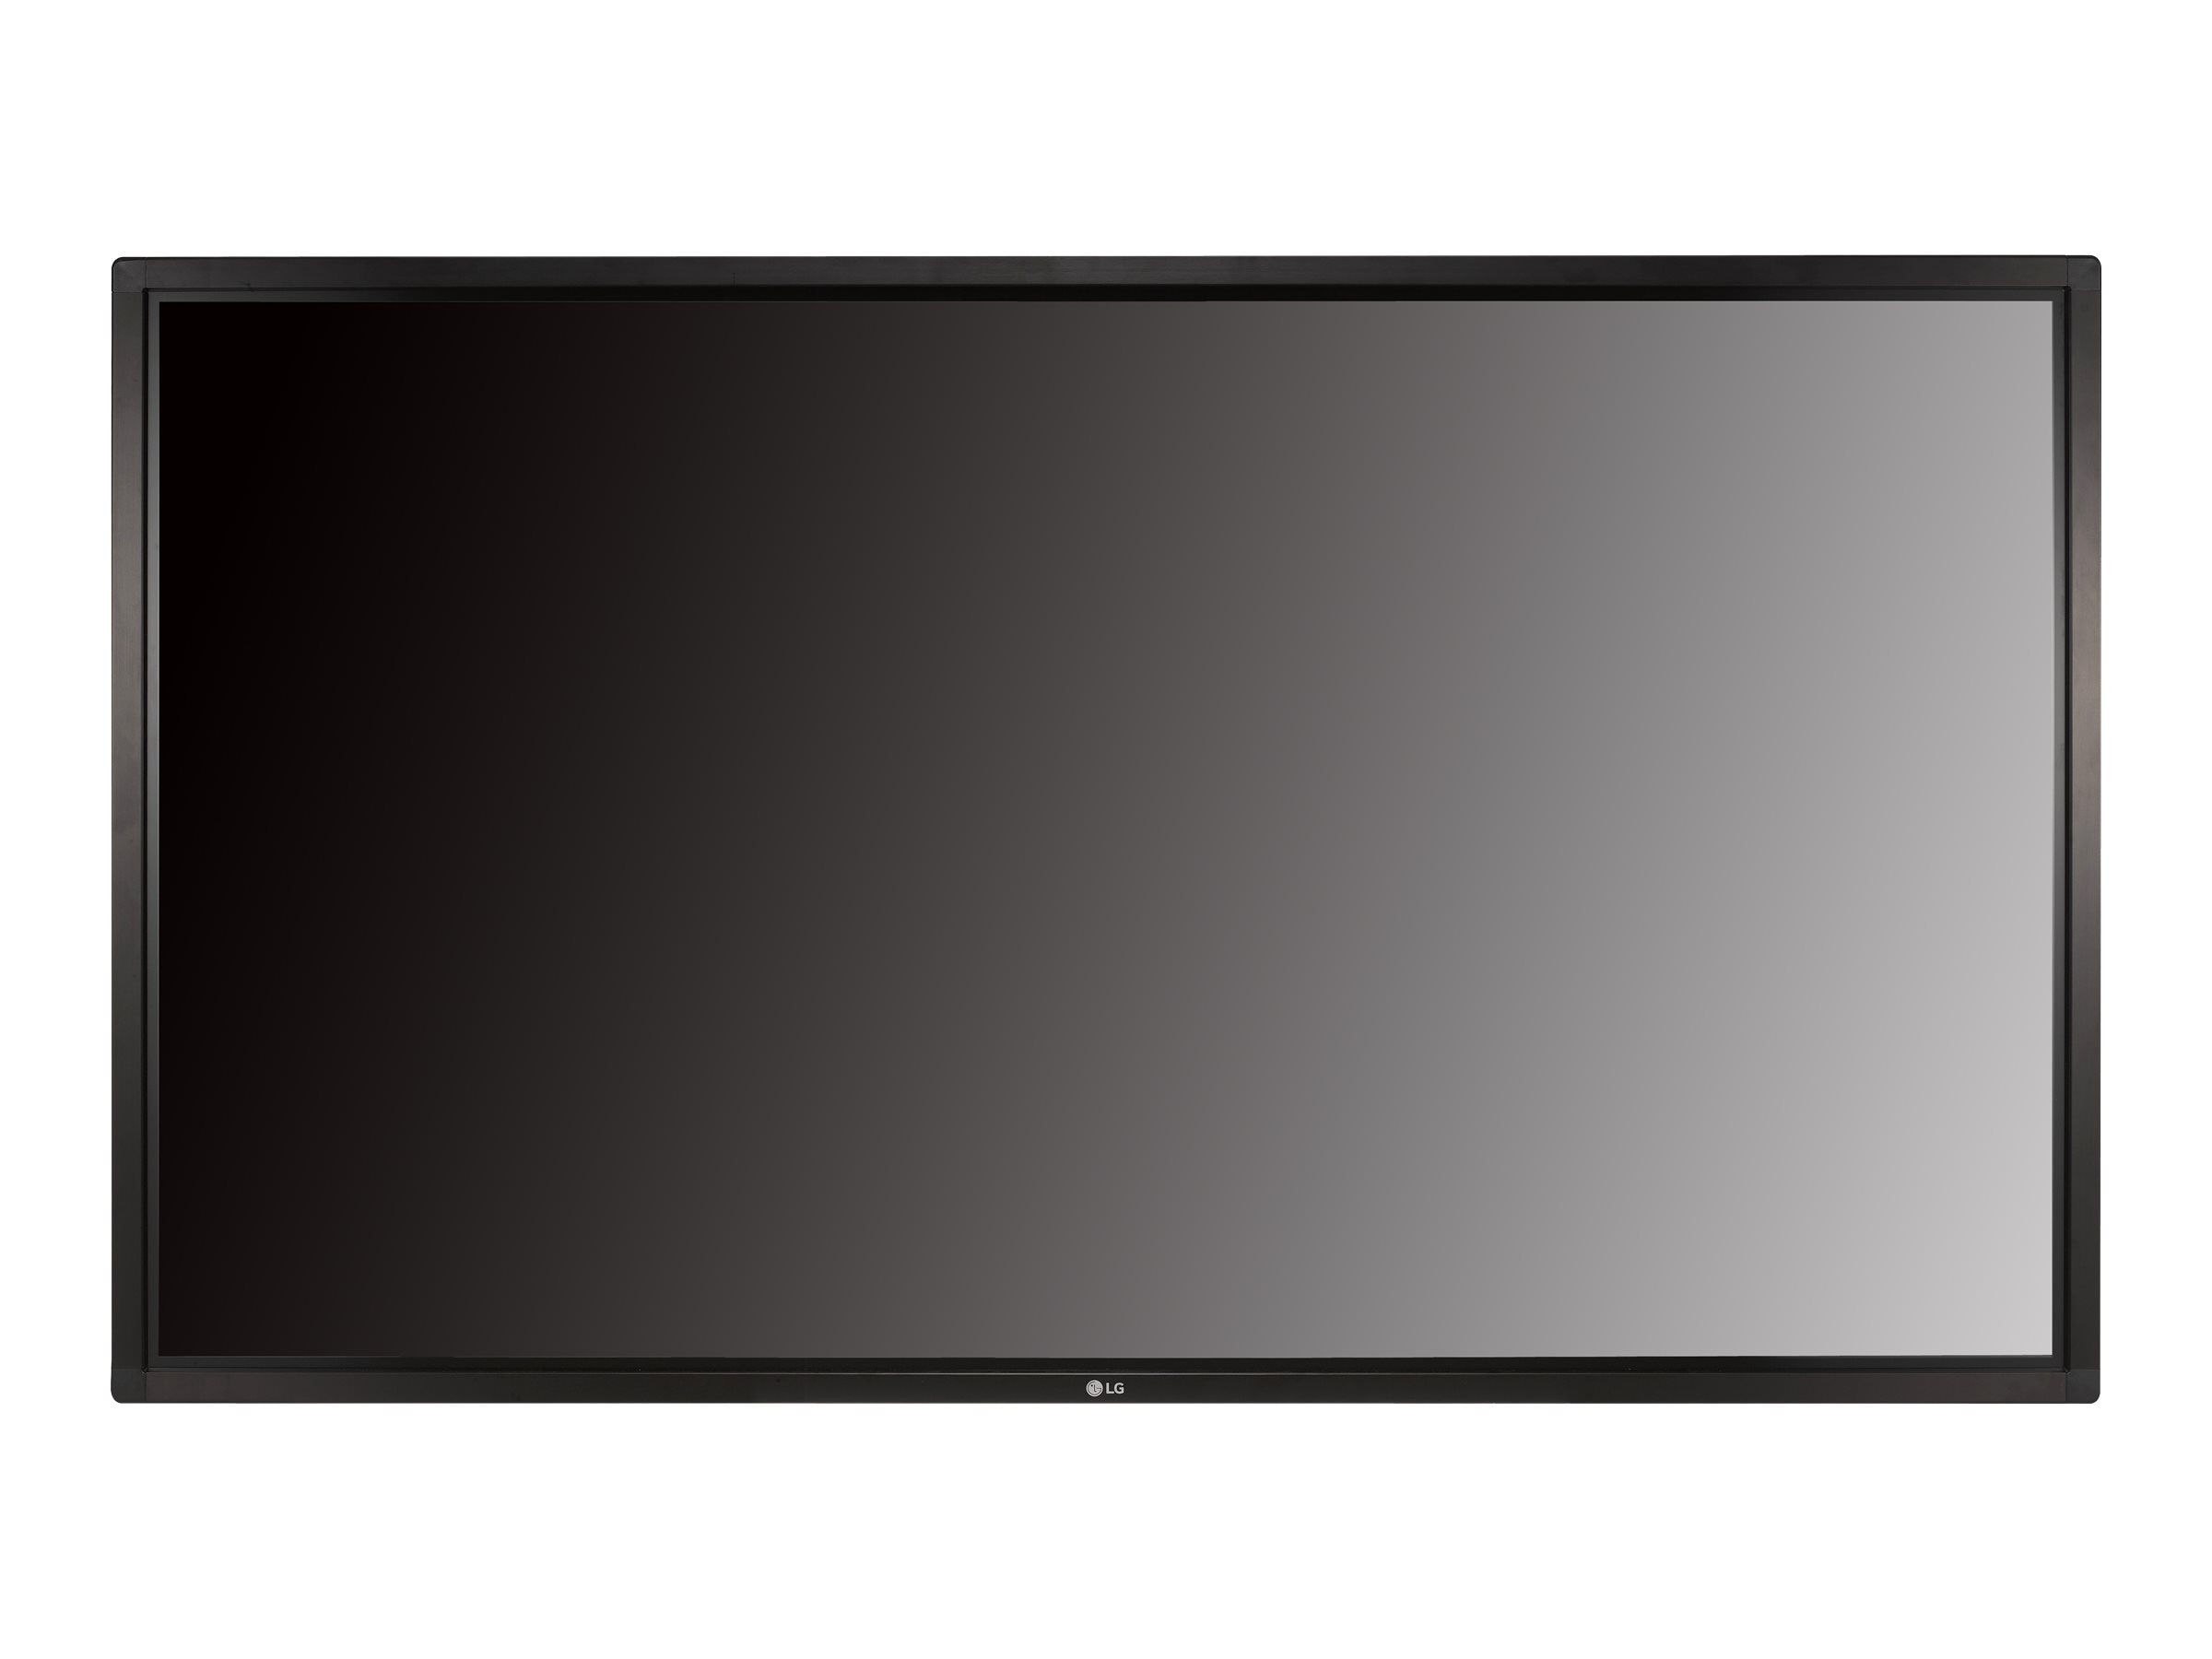 LG 84 TR3B-B Ultra HD LED-LCD Touchscreen Display, Black